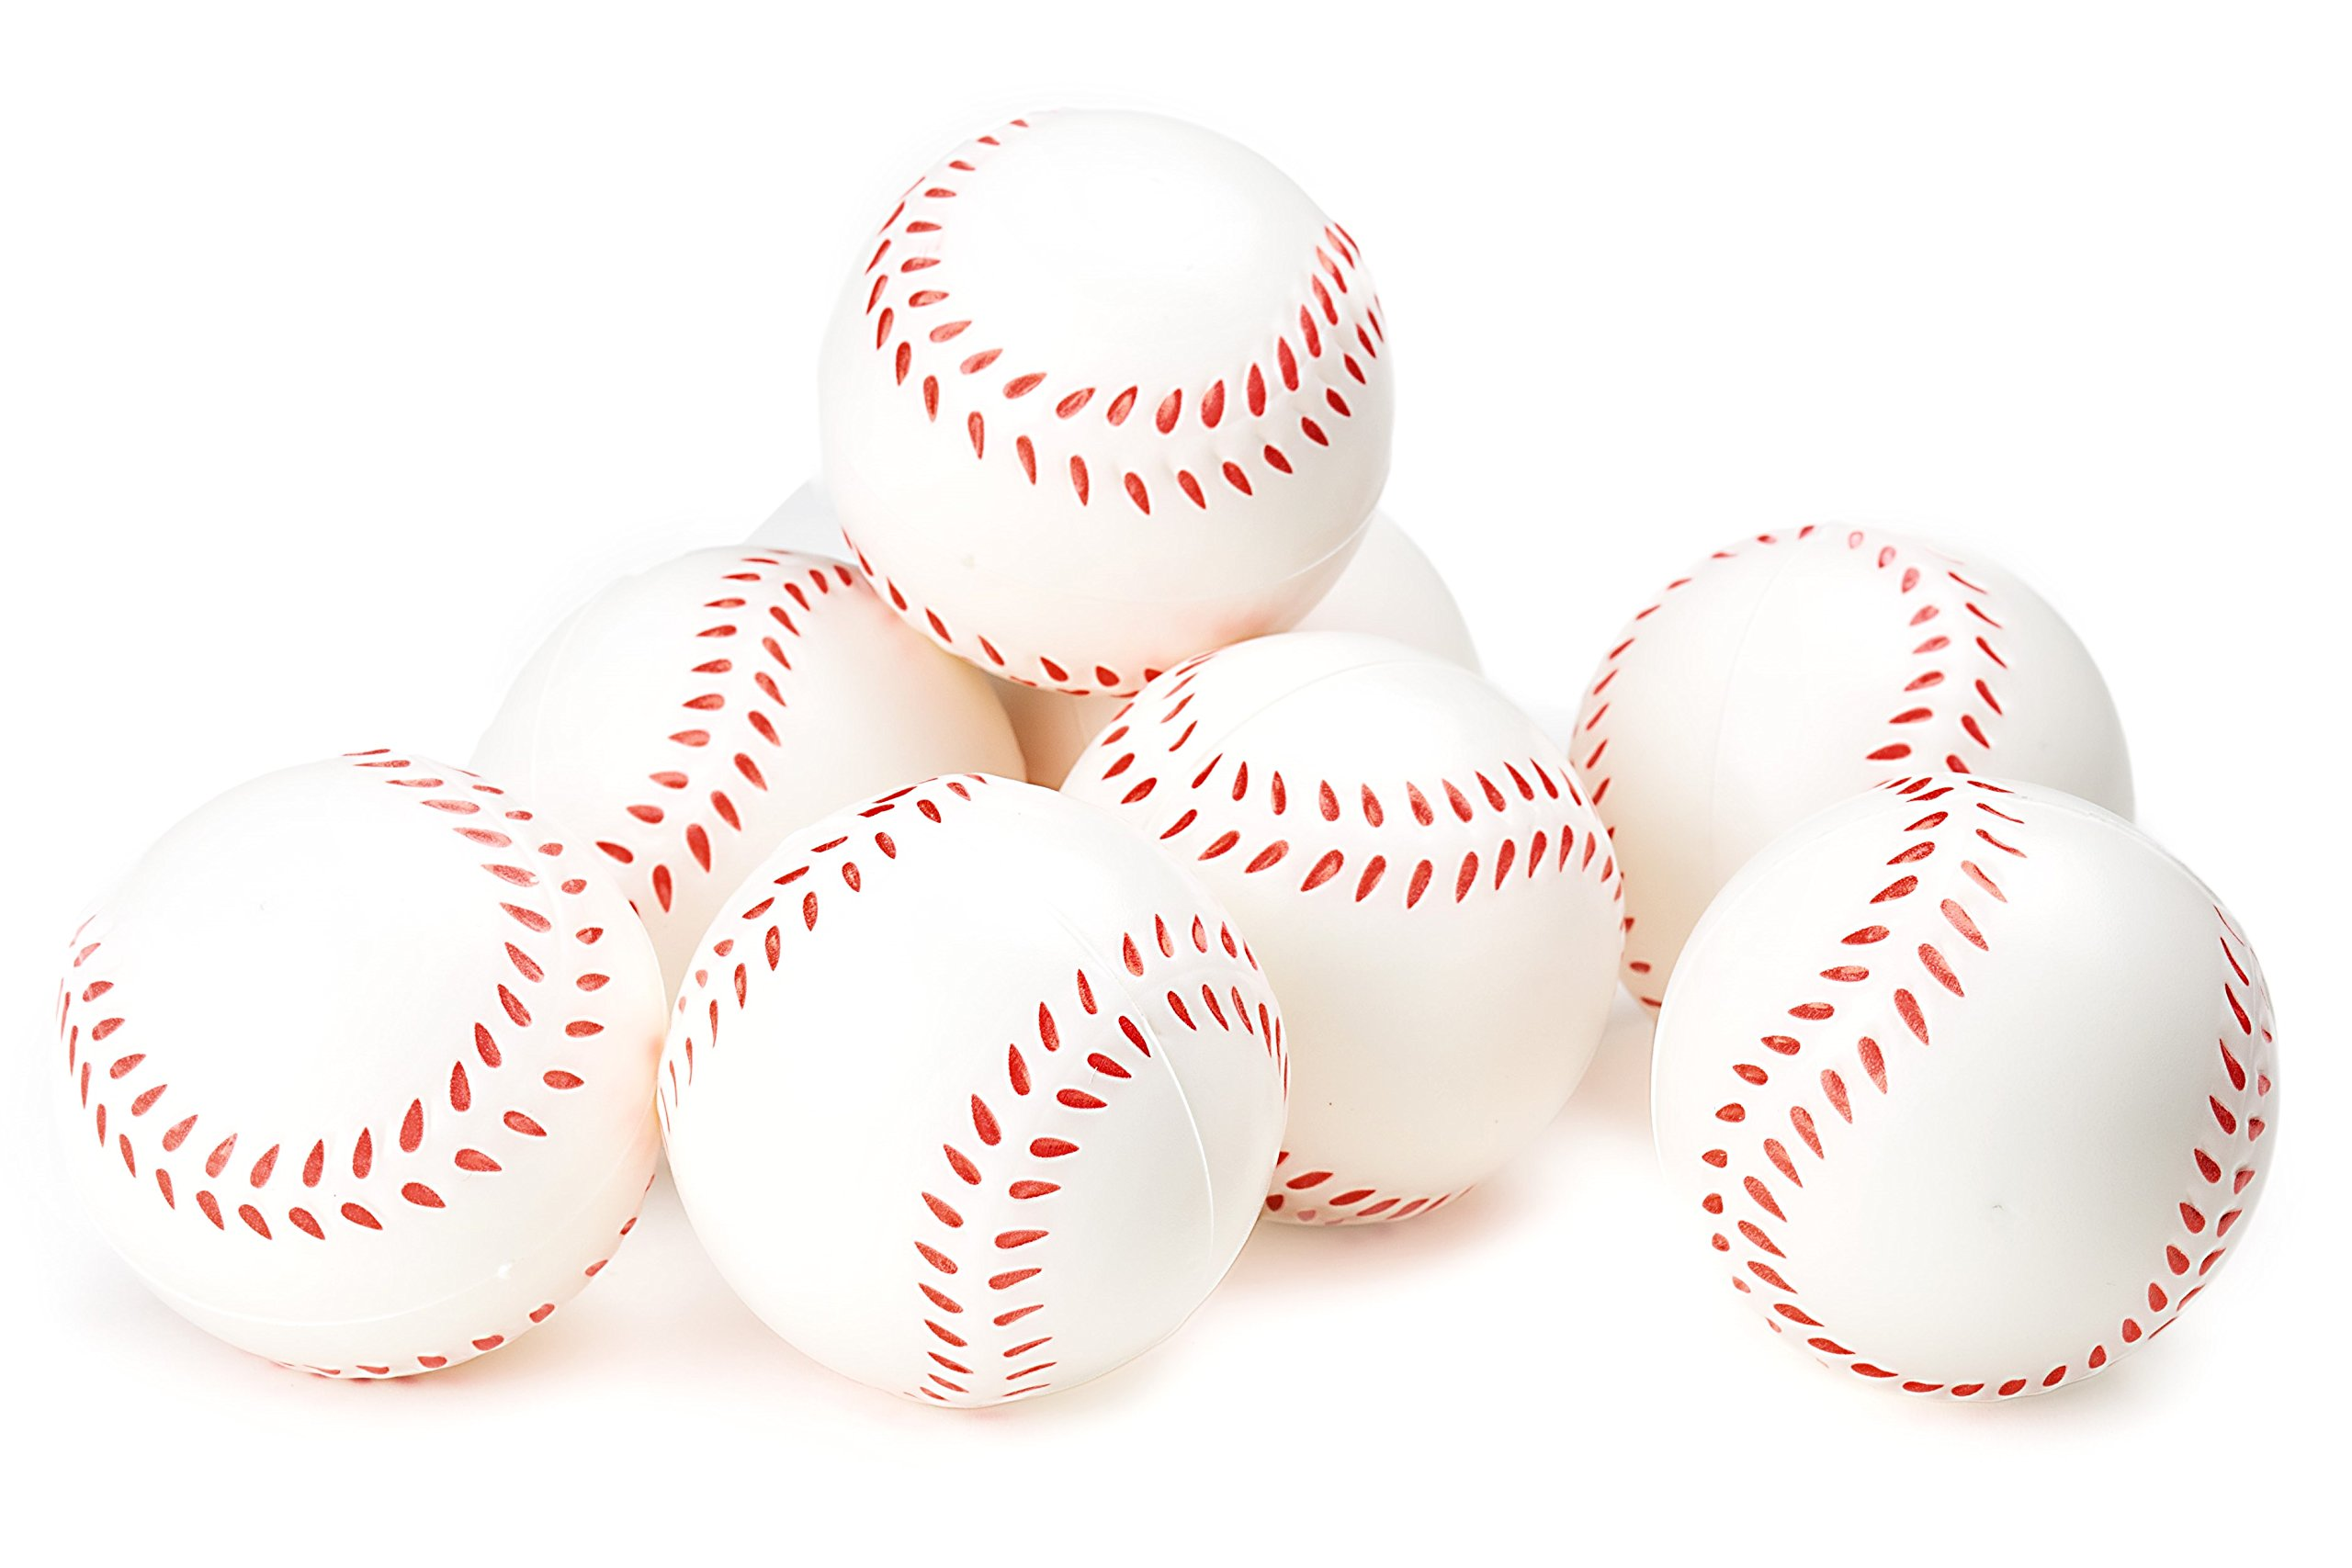 Baseball Sports Themed 2.5-Inch Foam Squeeze Balls for Stress Relief, Relaxable Realistic Baseball Sport Balls - Bulk 1 Dozen by Neliblu (Image #1)